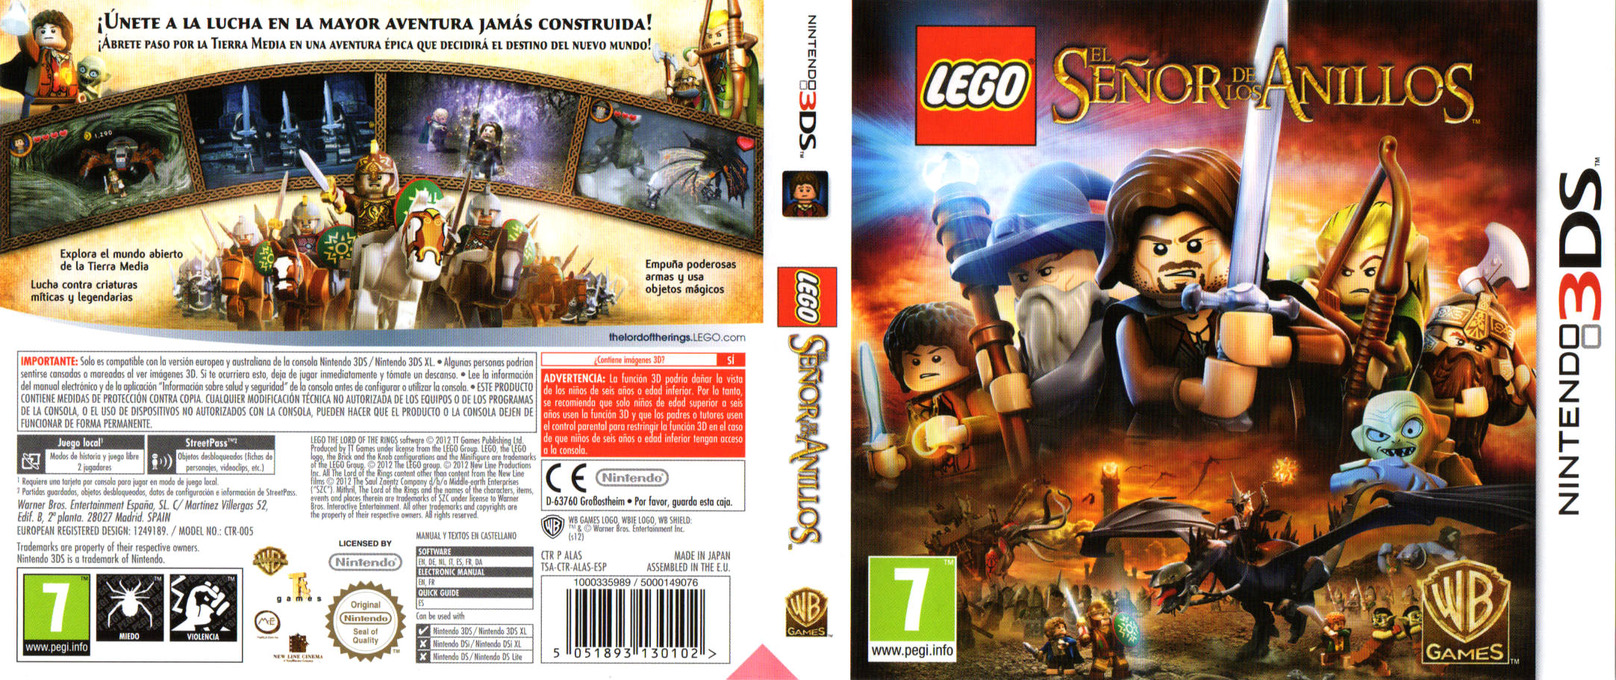 LEGO The Lord of the Rings 3DS coverfullHQ (ALAS)